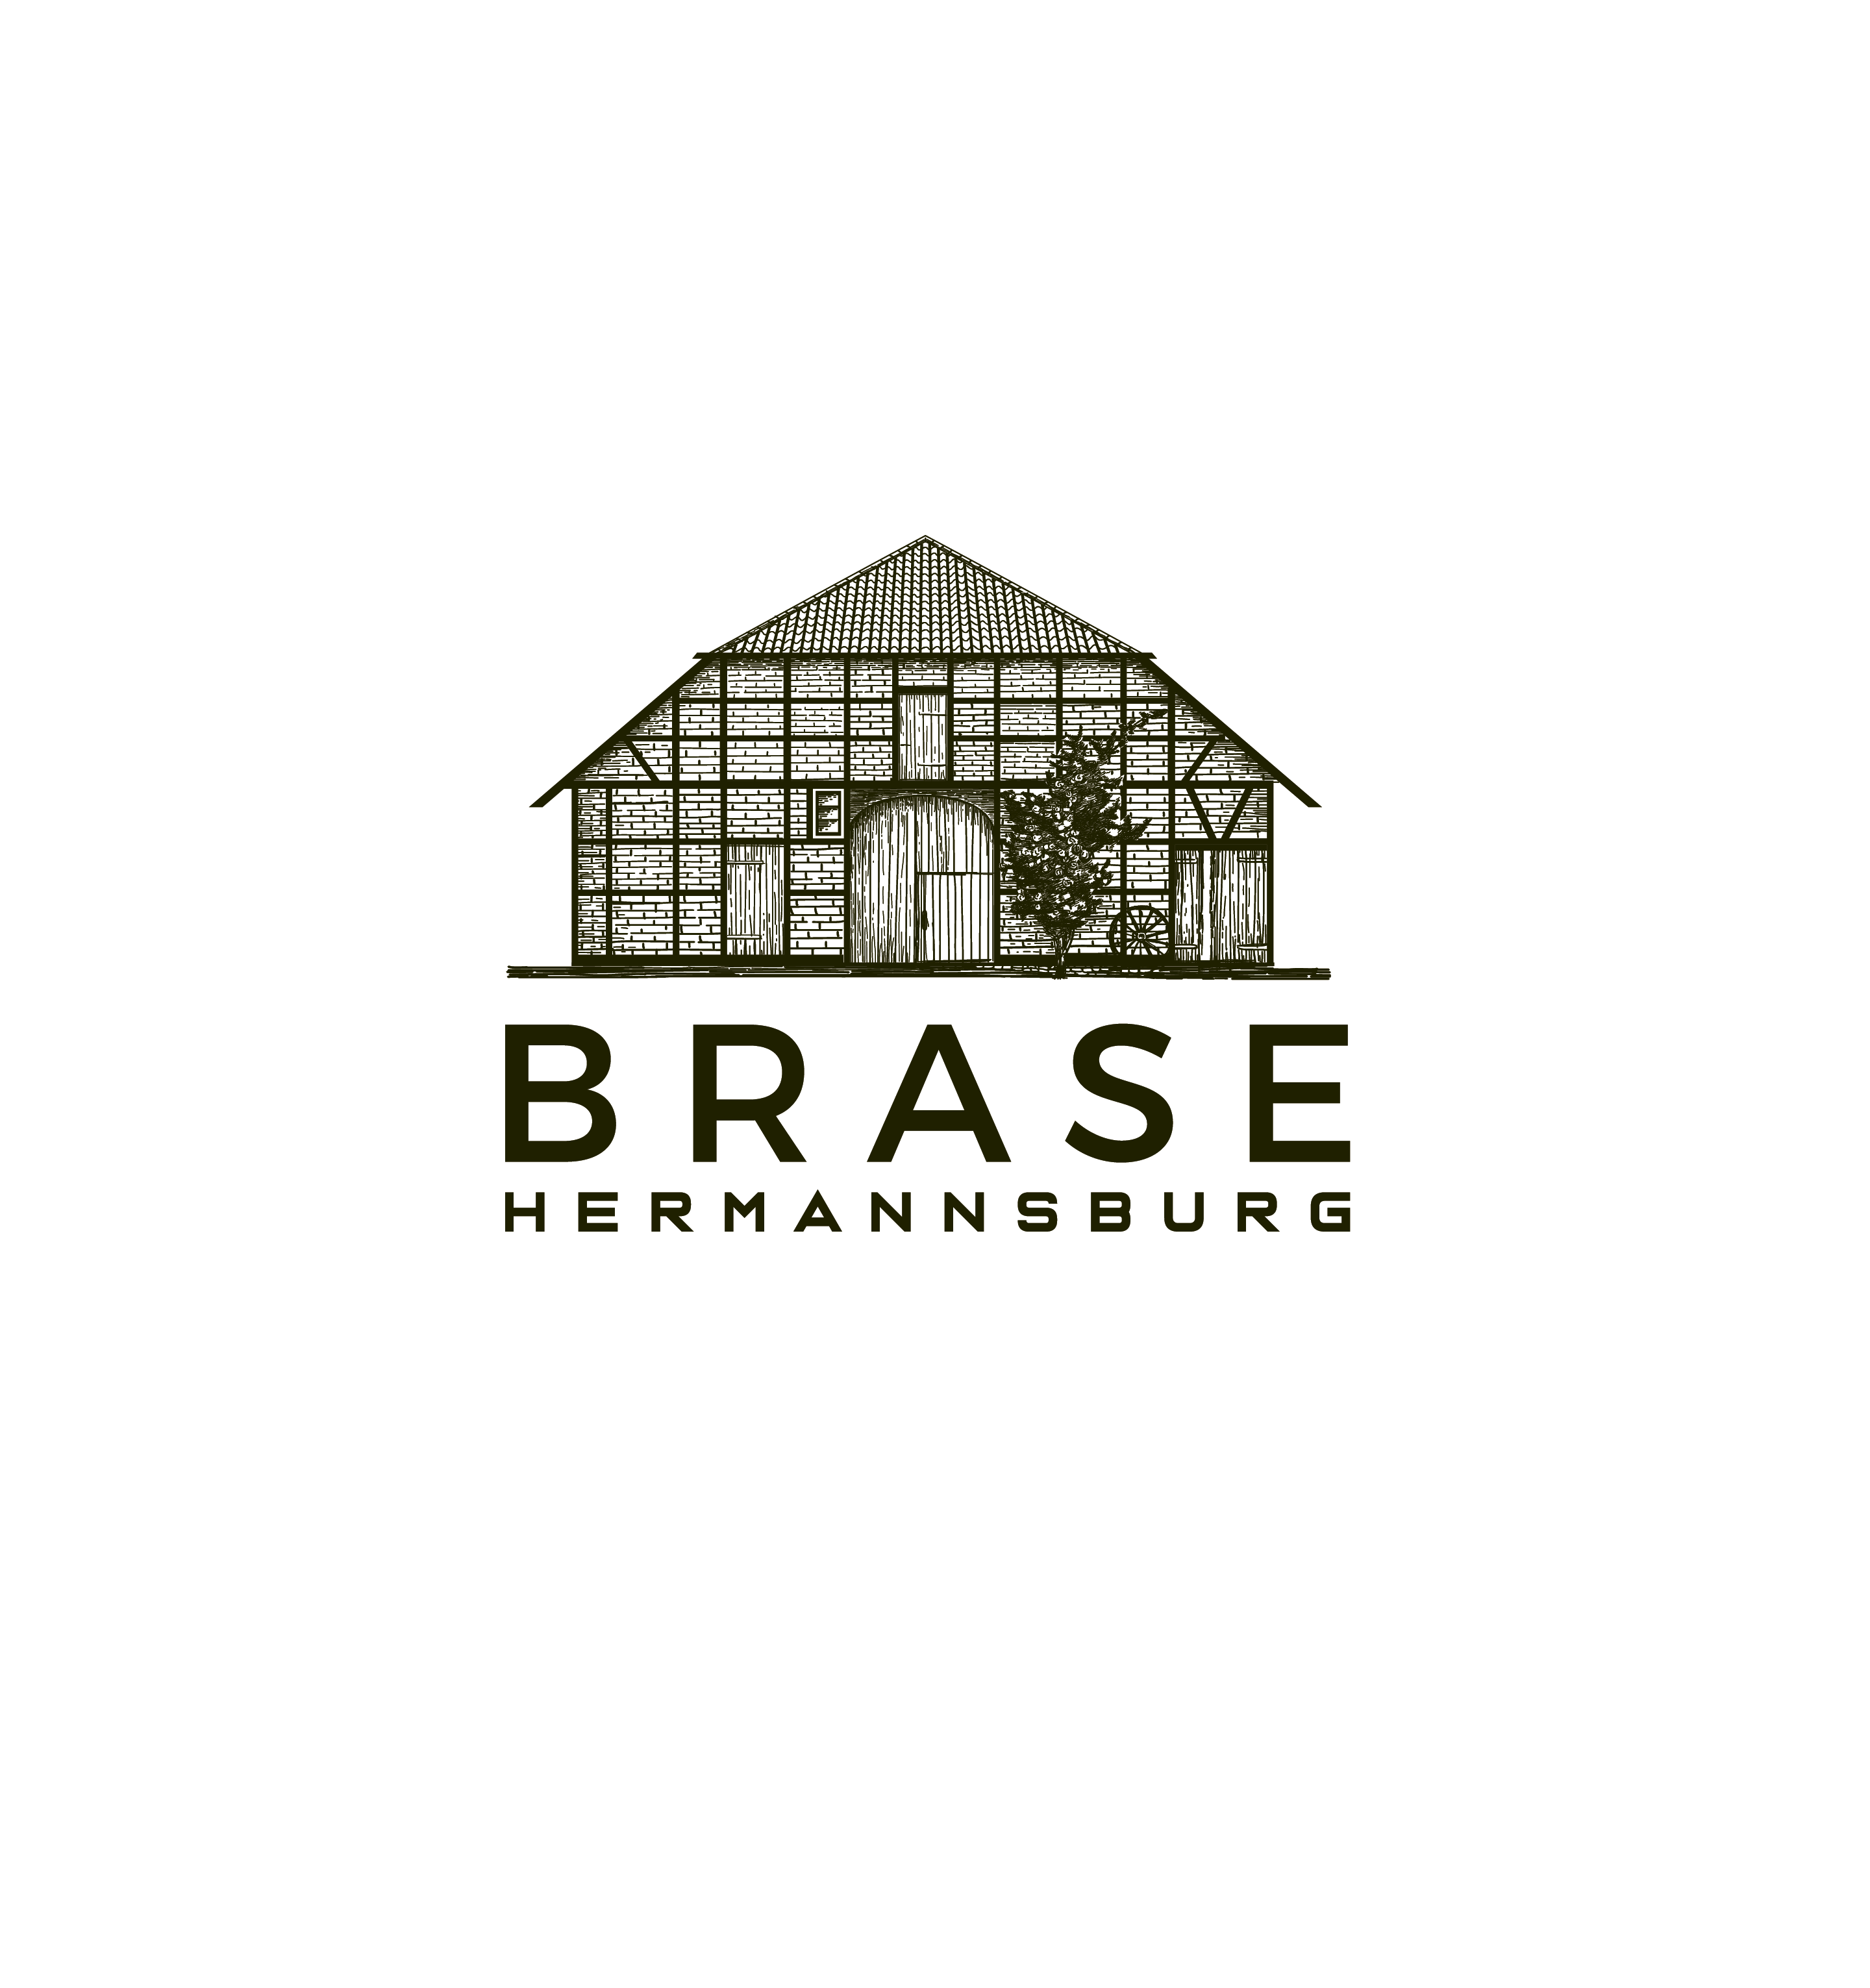 Logo for family farm with direct marketing in Northern Germany